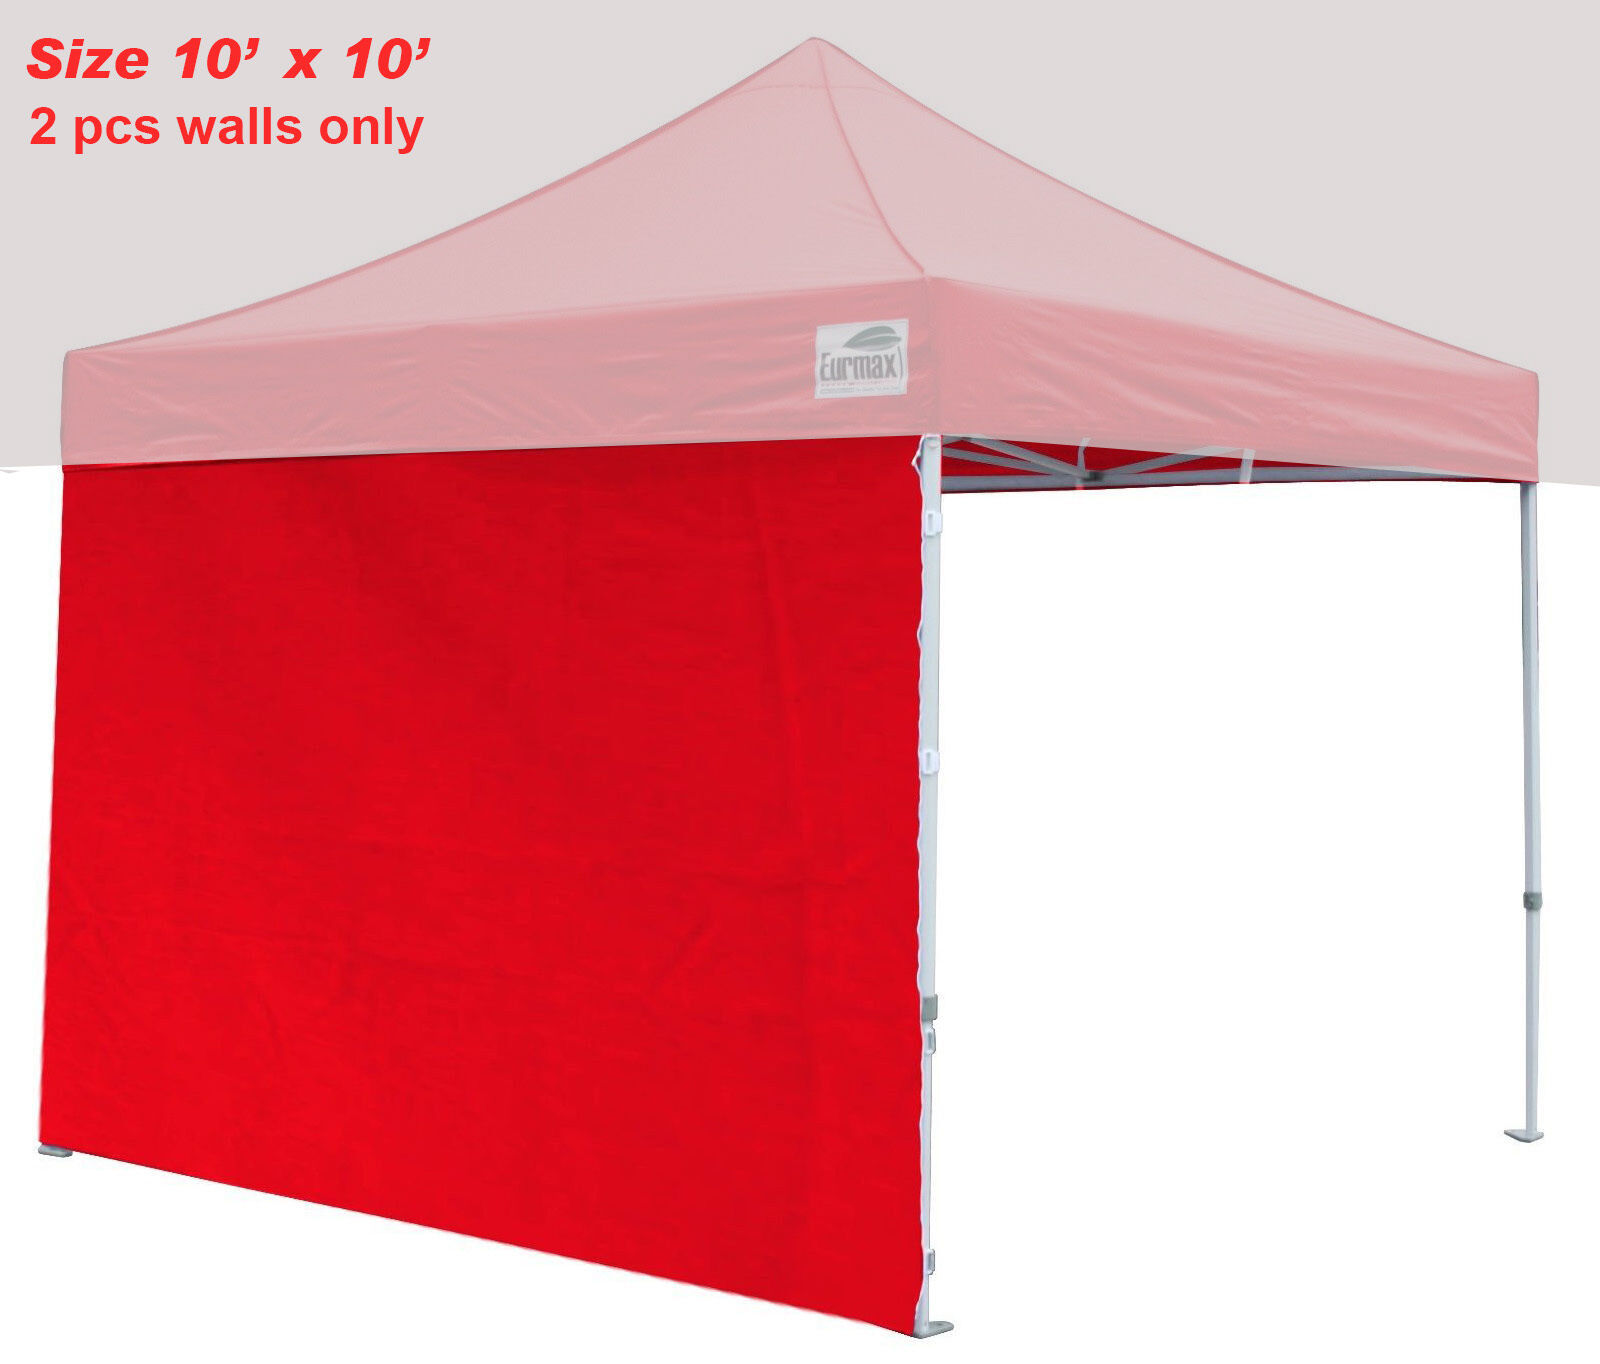 Picture 6 of 6  sc 1 st  eBay & 2pcs 10ft Side ZIPPER Walls End Panels for EZ Pop up Canopy Fair ...